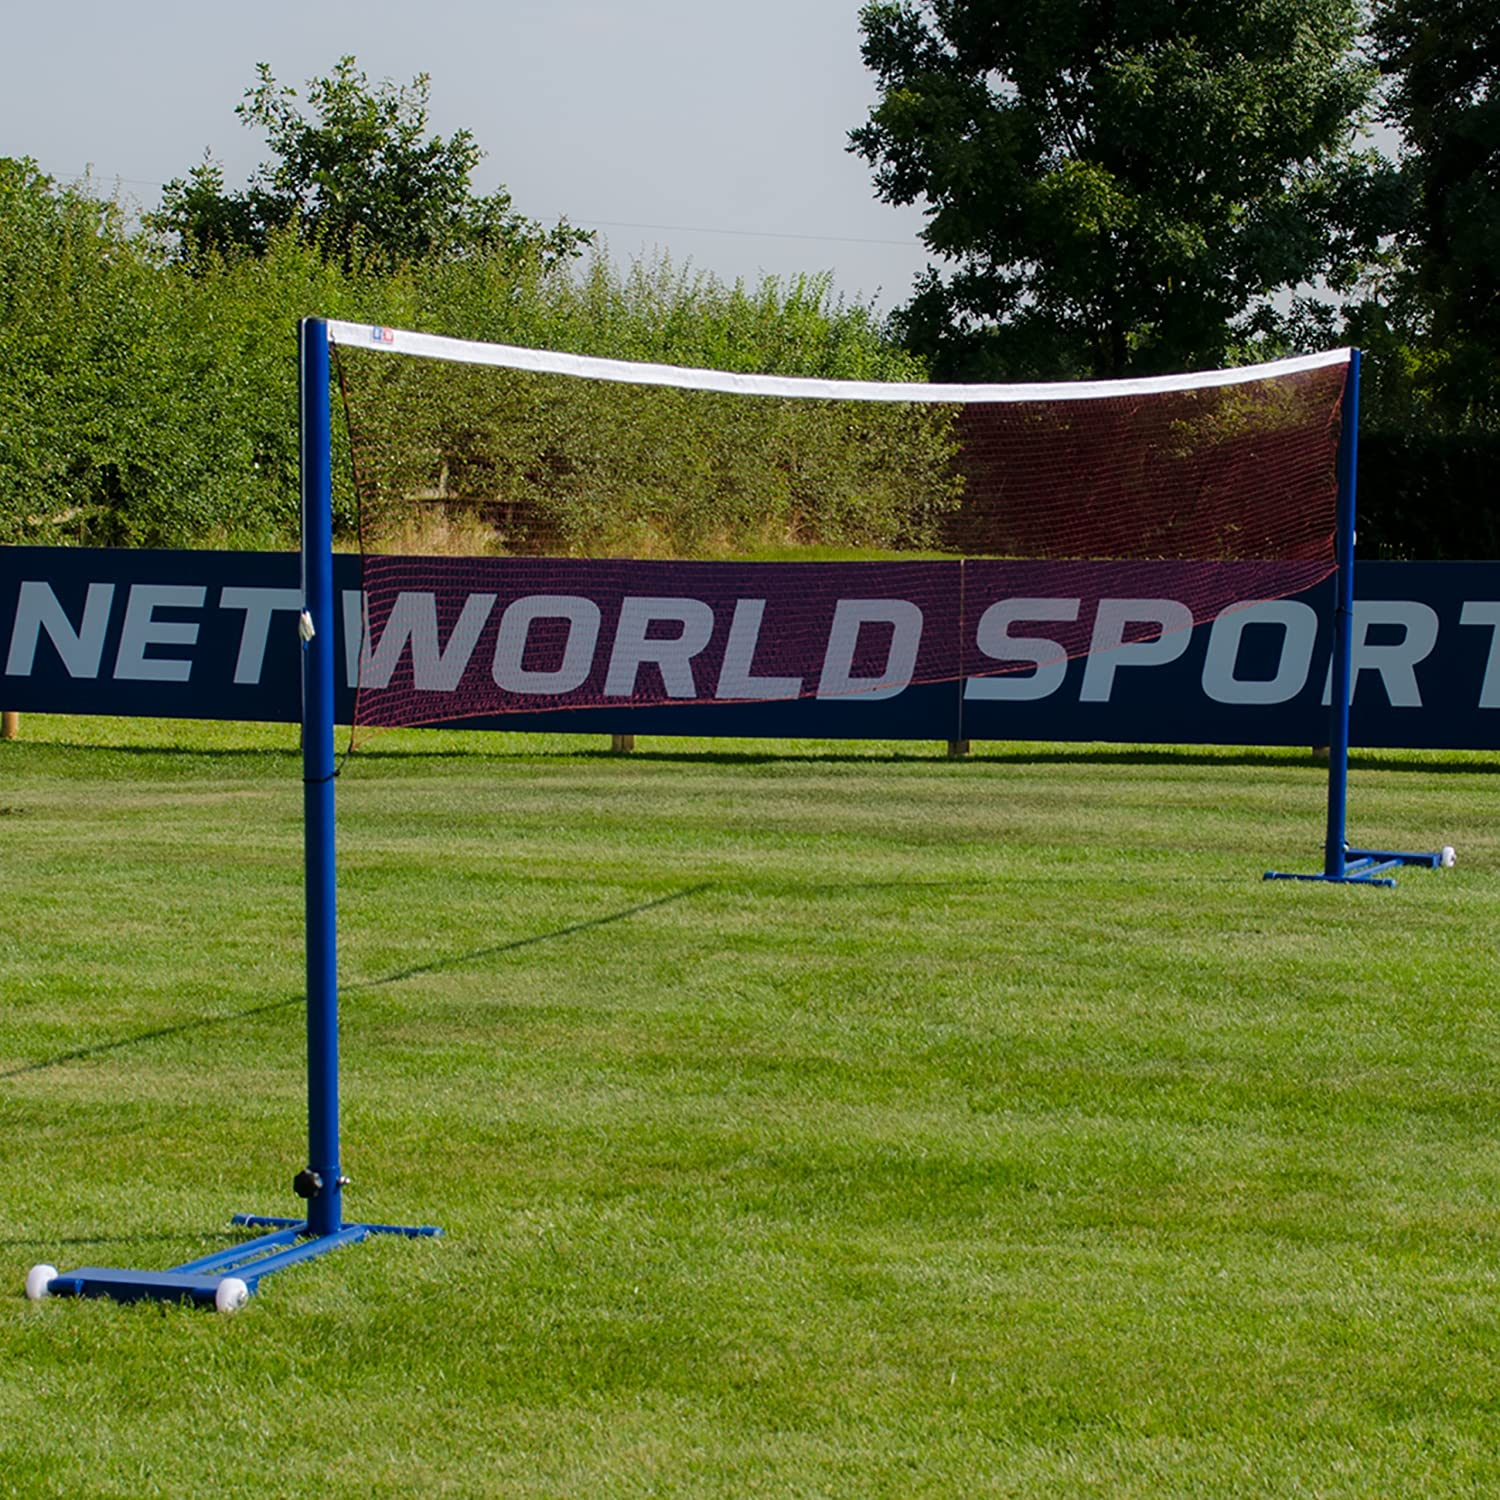 ProCourt Badminton Posts & 20ft Net (Freestanding) - Perfect for schools, clubs, leisure centres! [Net World Sports]